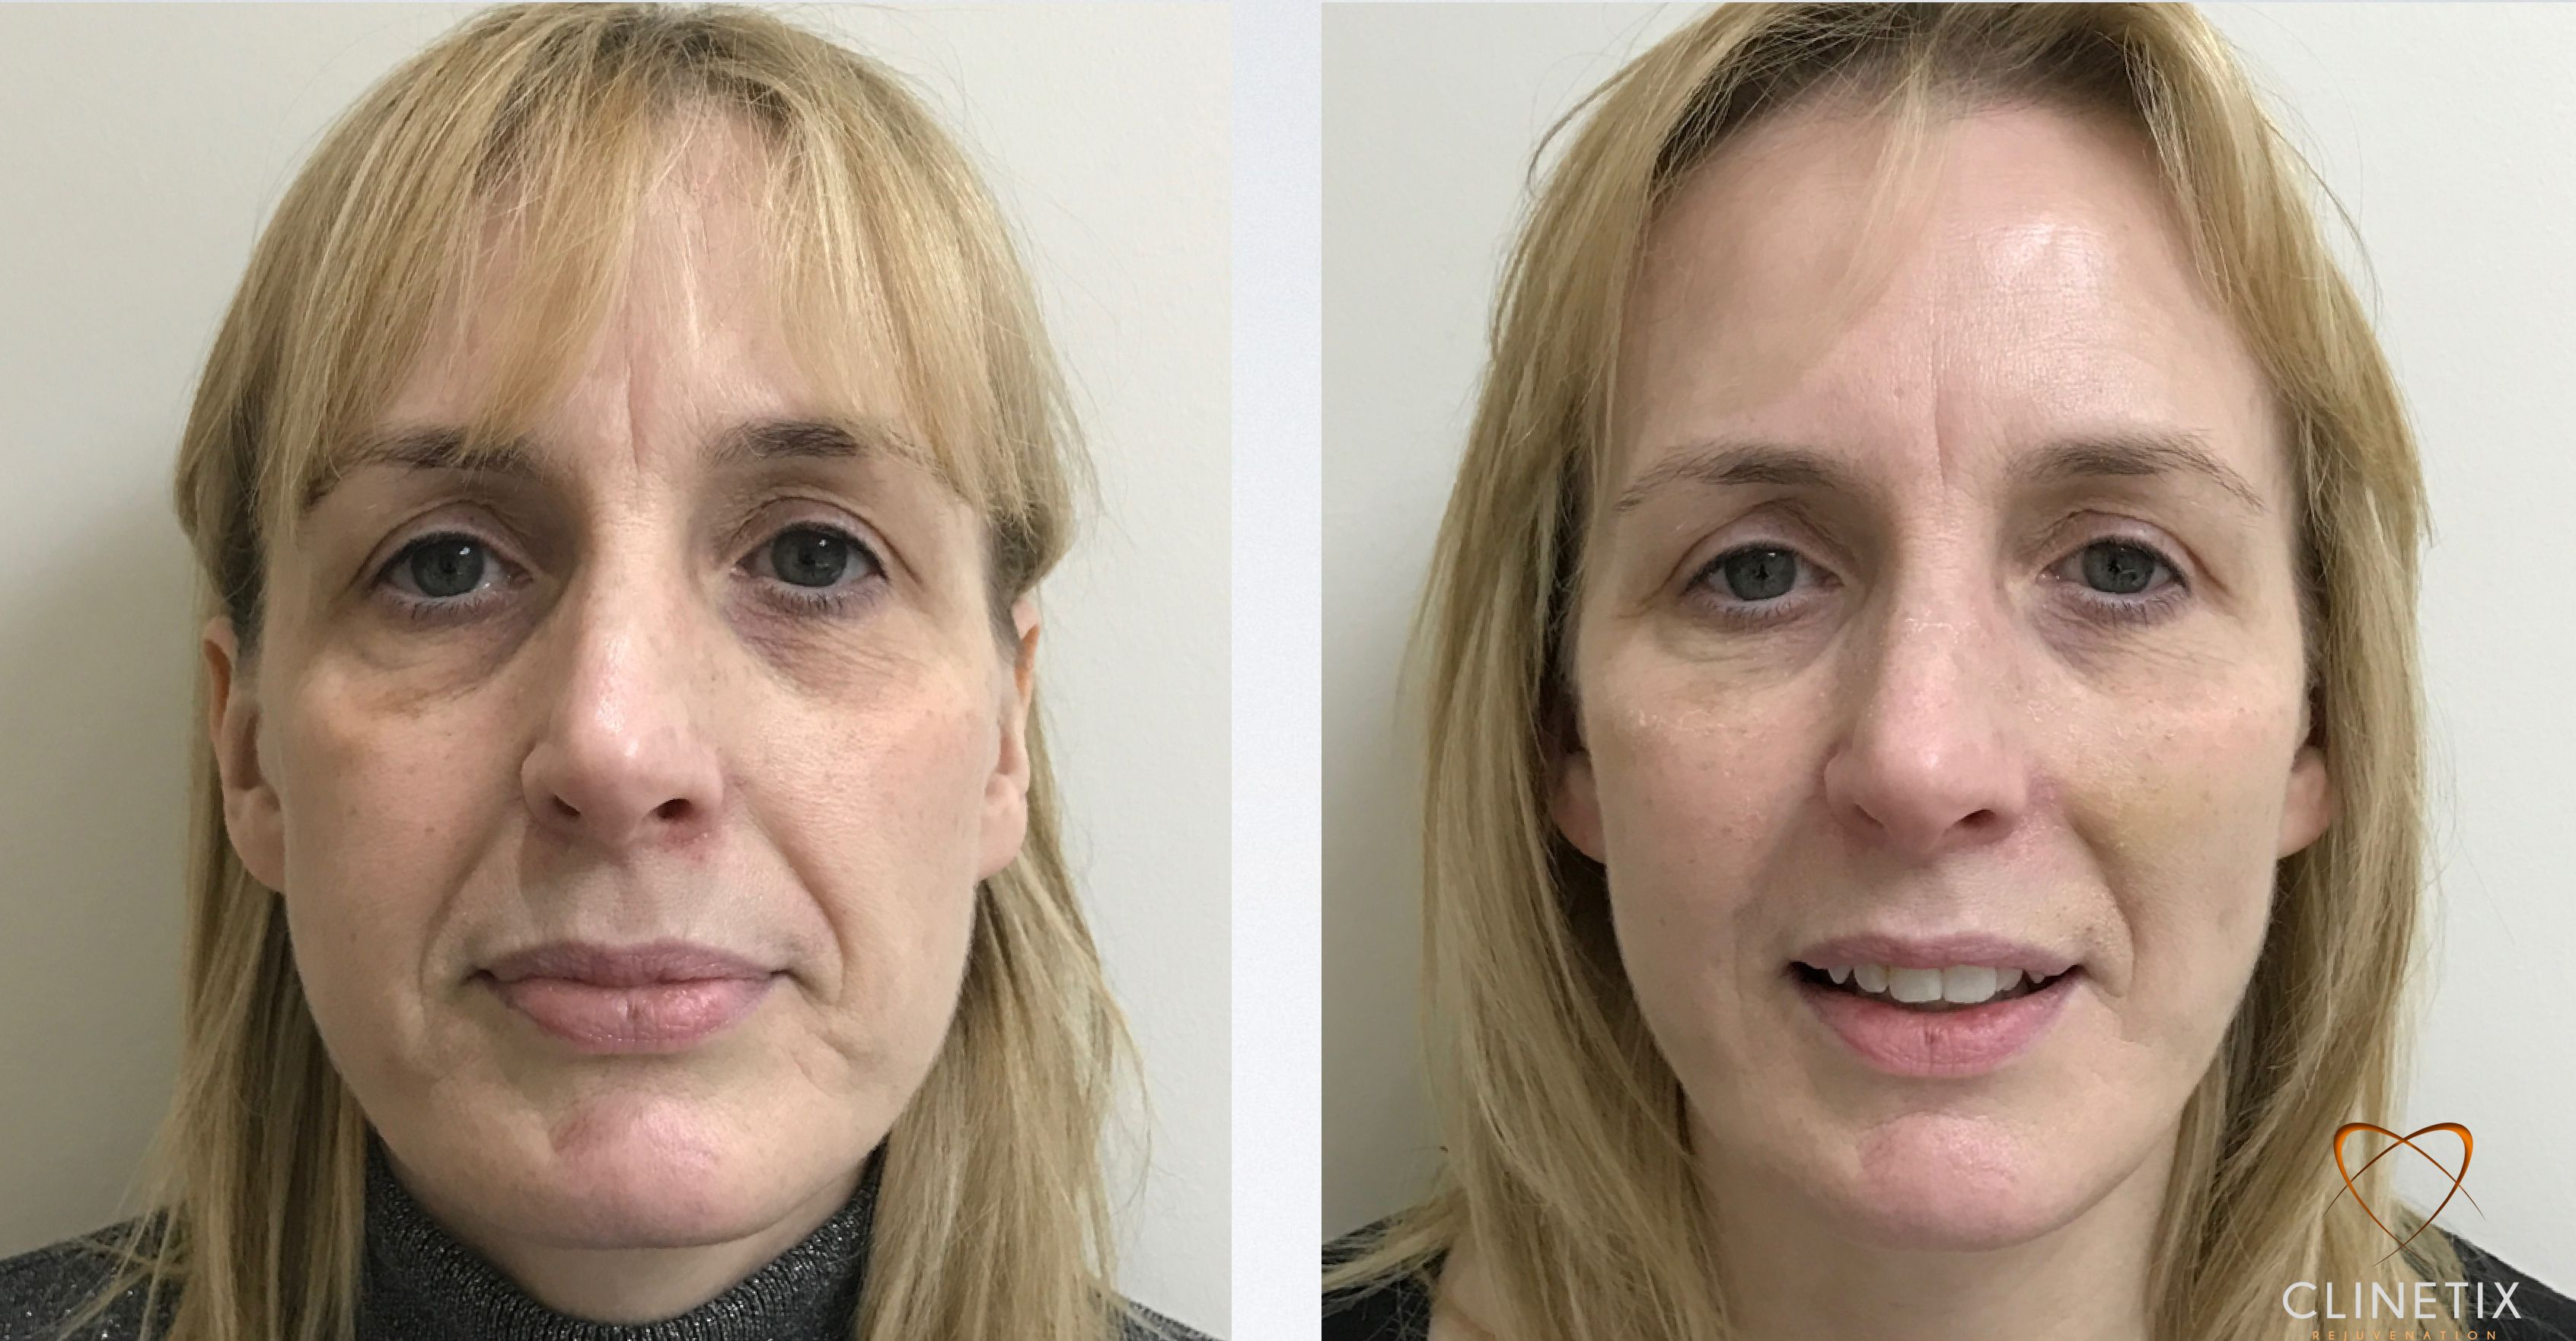 Before & after results achieved with the Clinetix Volume